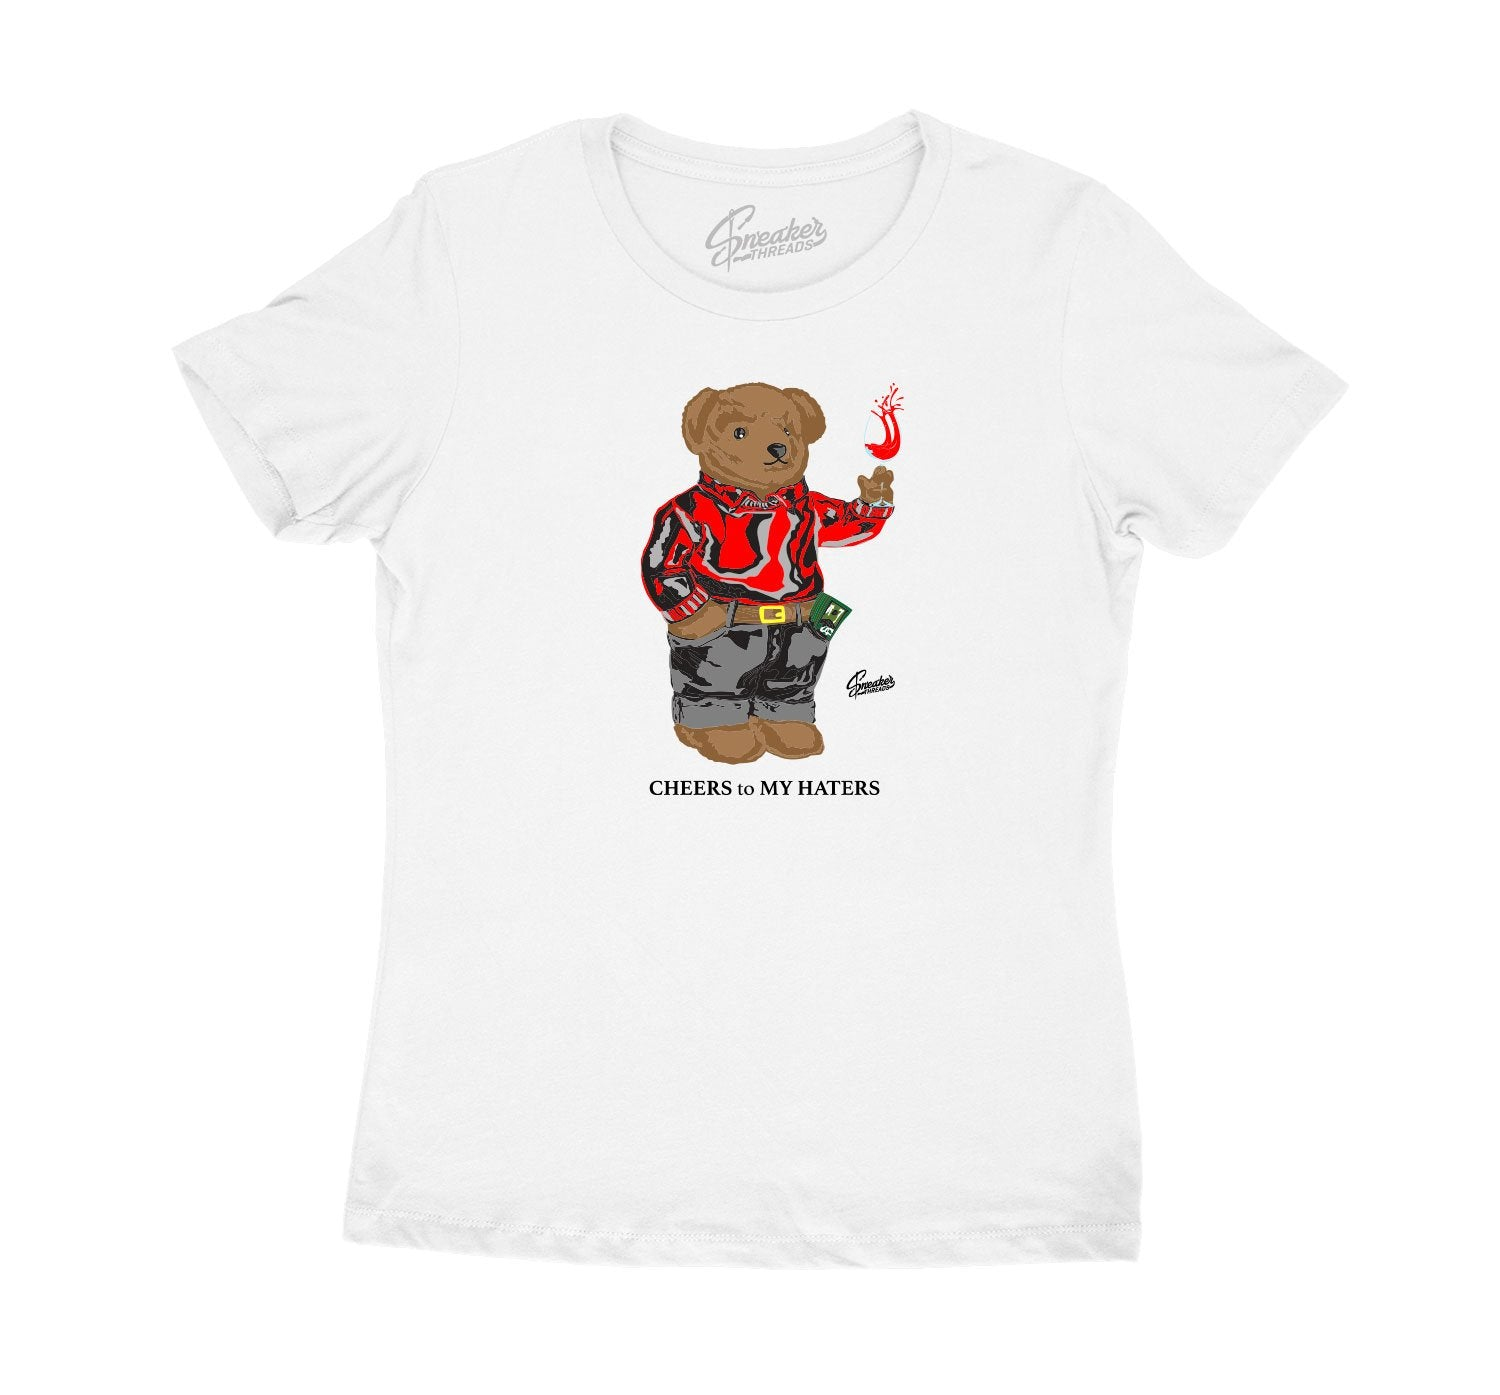 Cutest shirts for women to wear with Yeezy v2 Black